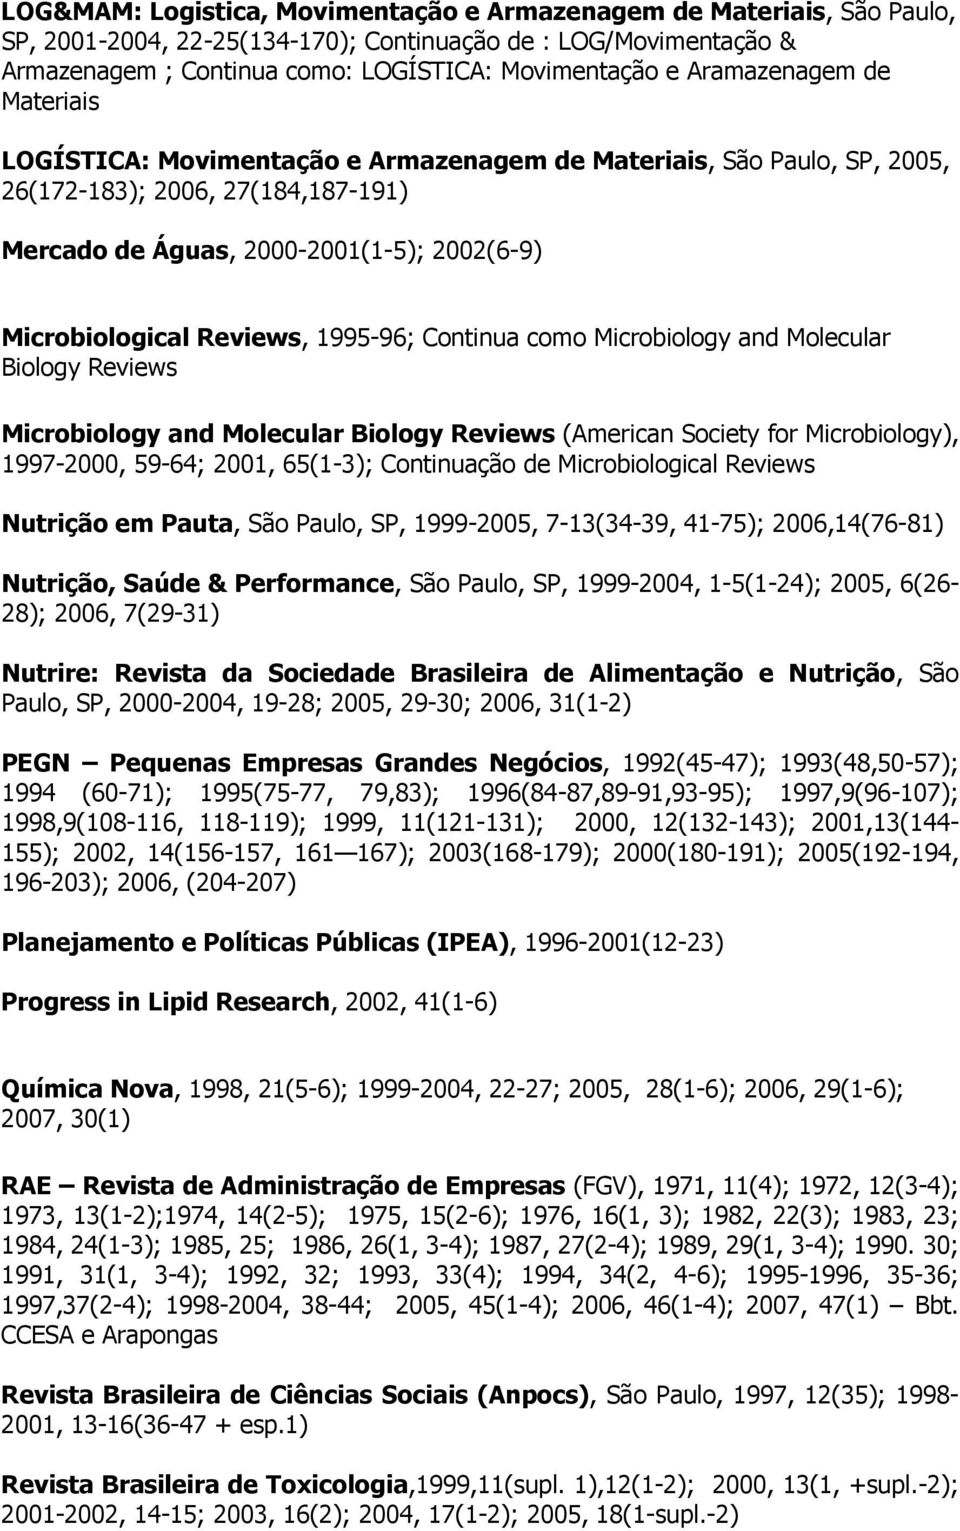 Reviews, 1995-96; Continua como Microbiology and Molecular Biology Reviews Microbiology and Molecular Biology Reviews (American Society for Microbiology), 1997-2000, 59-64; 2001, 65(1-3); Continuação